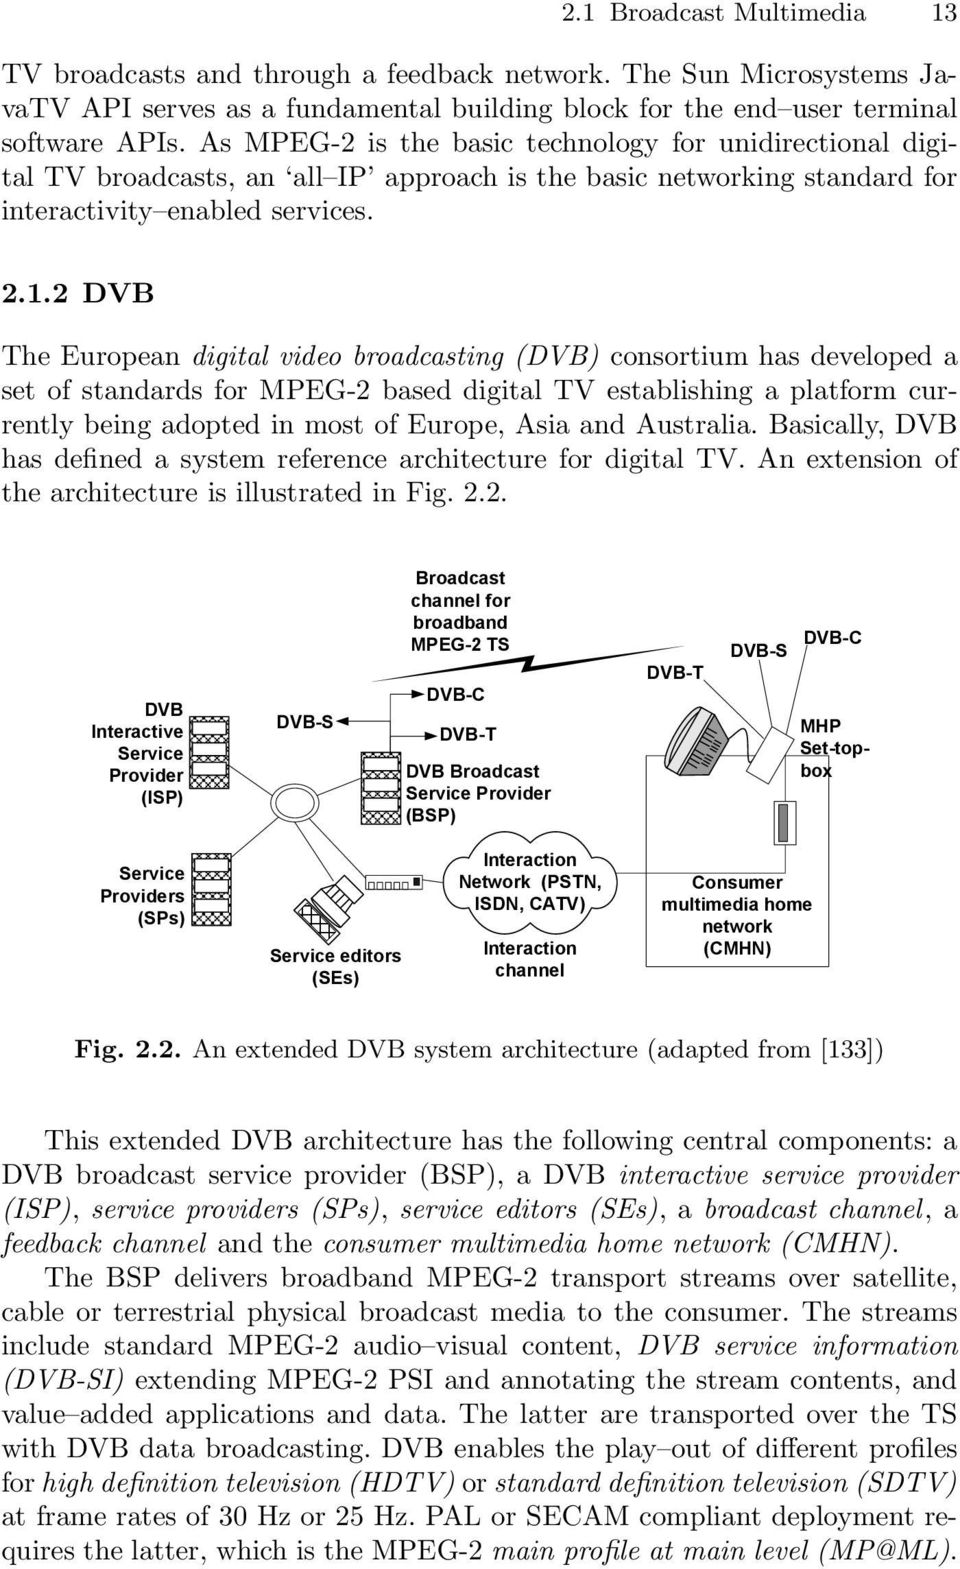 2 DVB The European digital video broadcasting (DVB) consortium has developed a set of standards for MPEG-2 based digital TV establishing a platform currently being adopted in most of Europe, Asia and